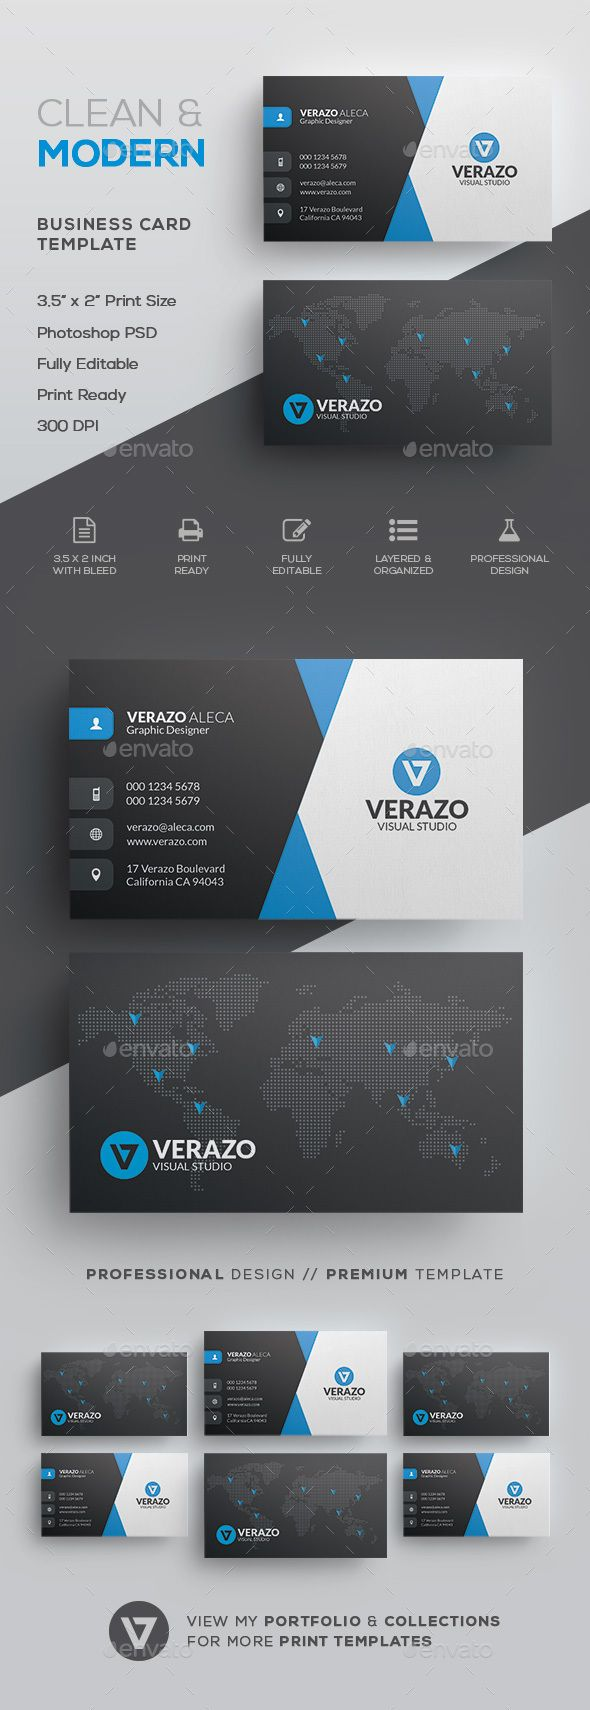 Clean & Modern Corporate Business Card Template by verazo Need more high quality business card? View my Business Card Templates Collection OR Save Money! Buy Business Card Bundle for only